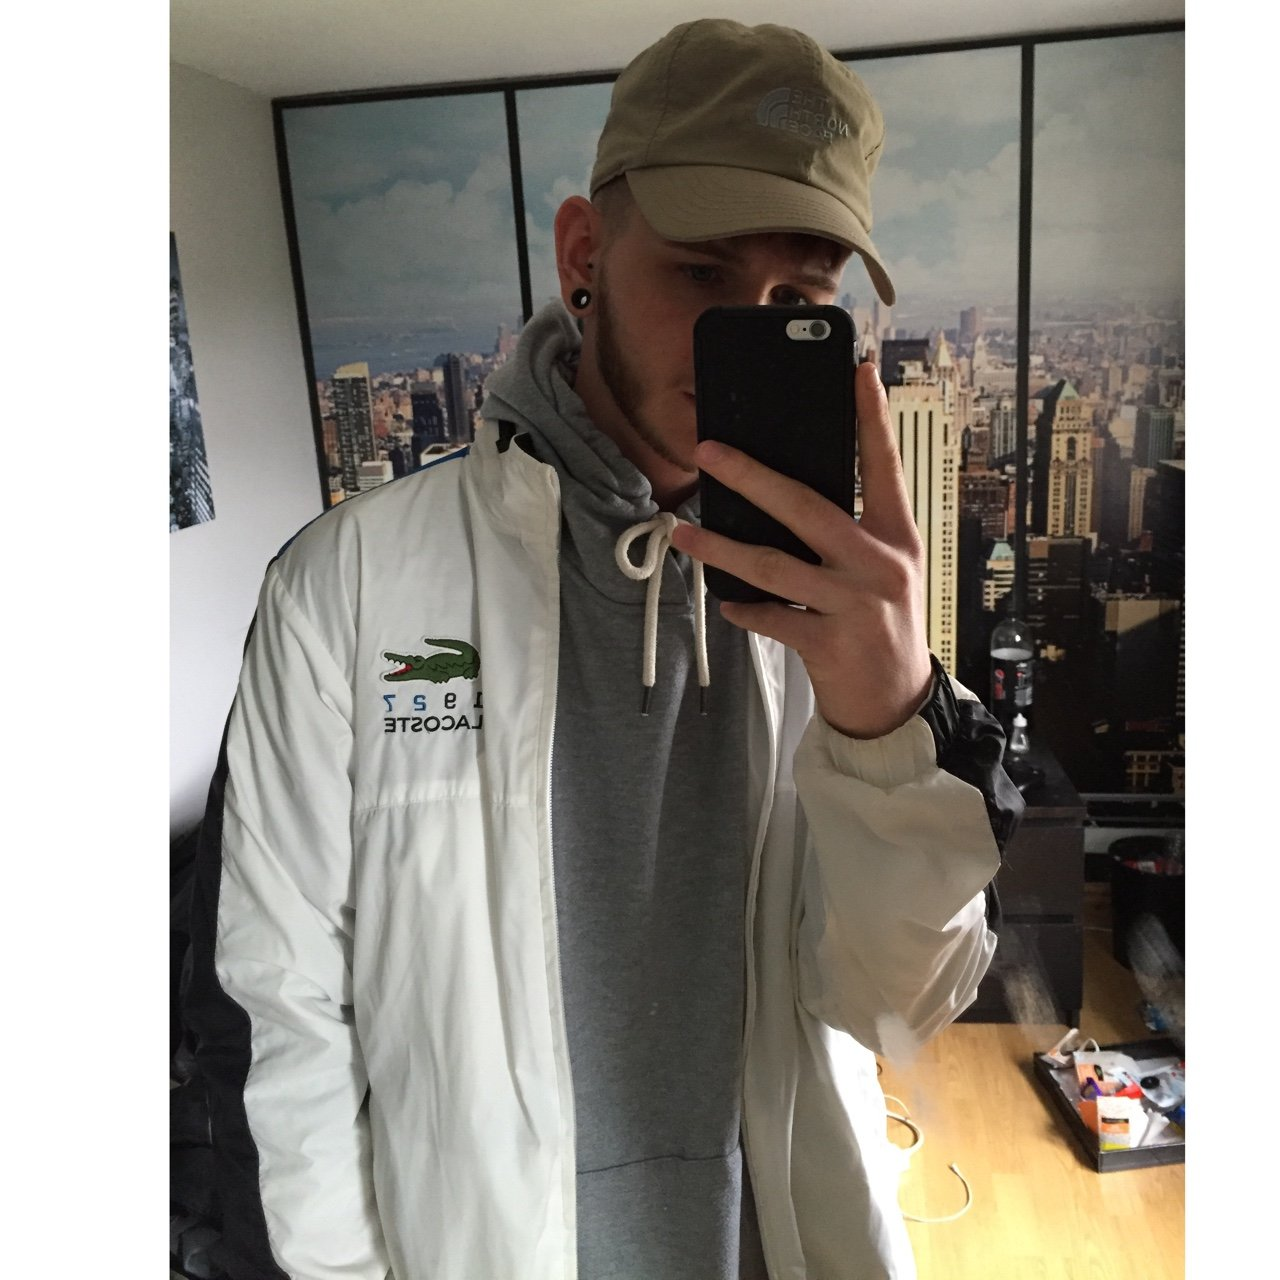 47b7b7dc5f5 Price drop. Men s white 1927 Lacoste Sport track jacket. a - Depop